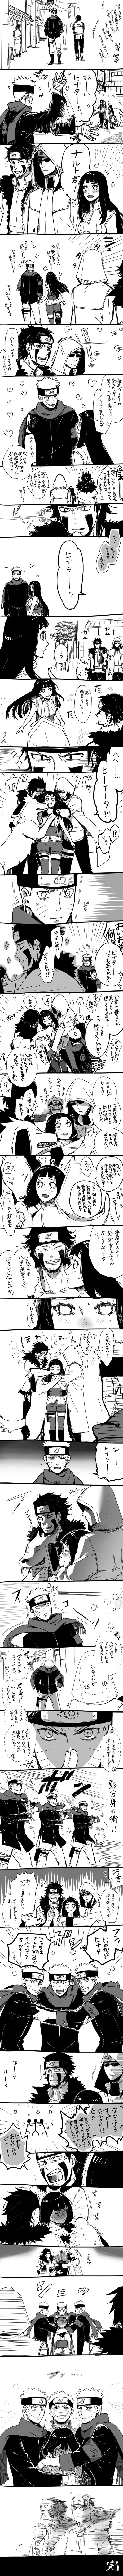 NARUTO/#1803391 - Don't know what they says but it is funny! IF SOMEBODY CAN TRANSLATE I WOULD APPRECIATE IT!